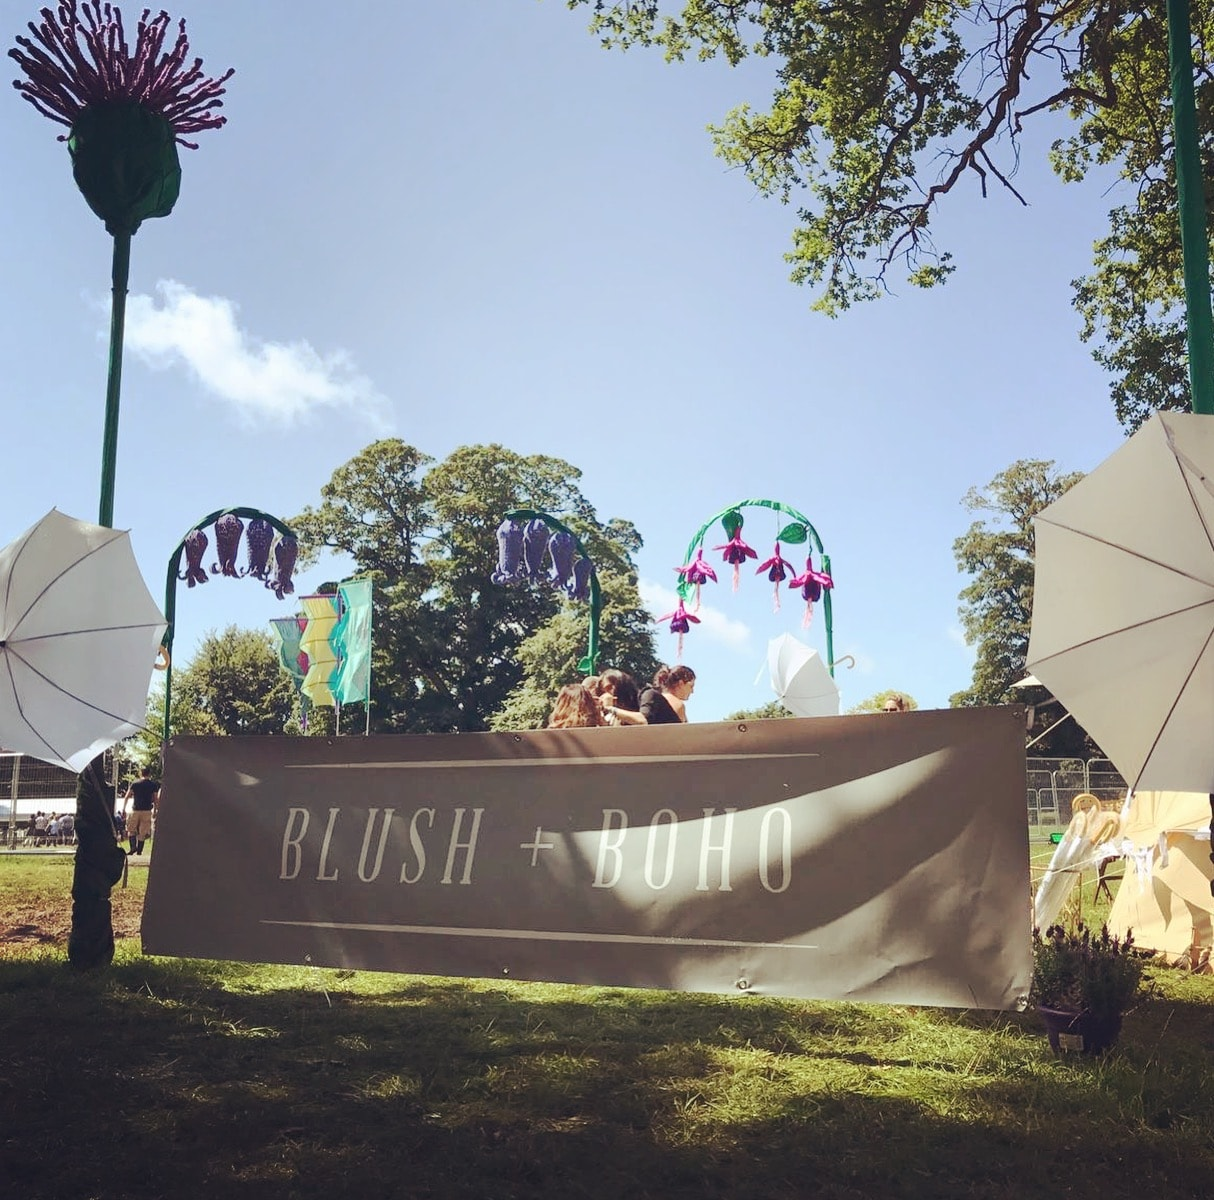 Blush + blow photography area